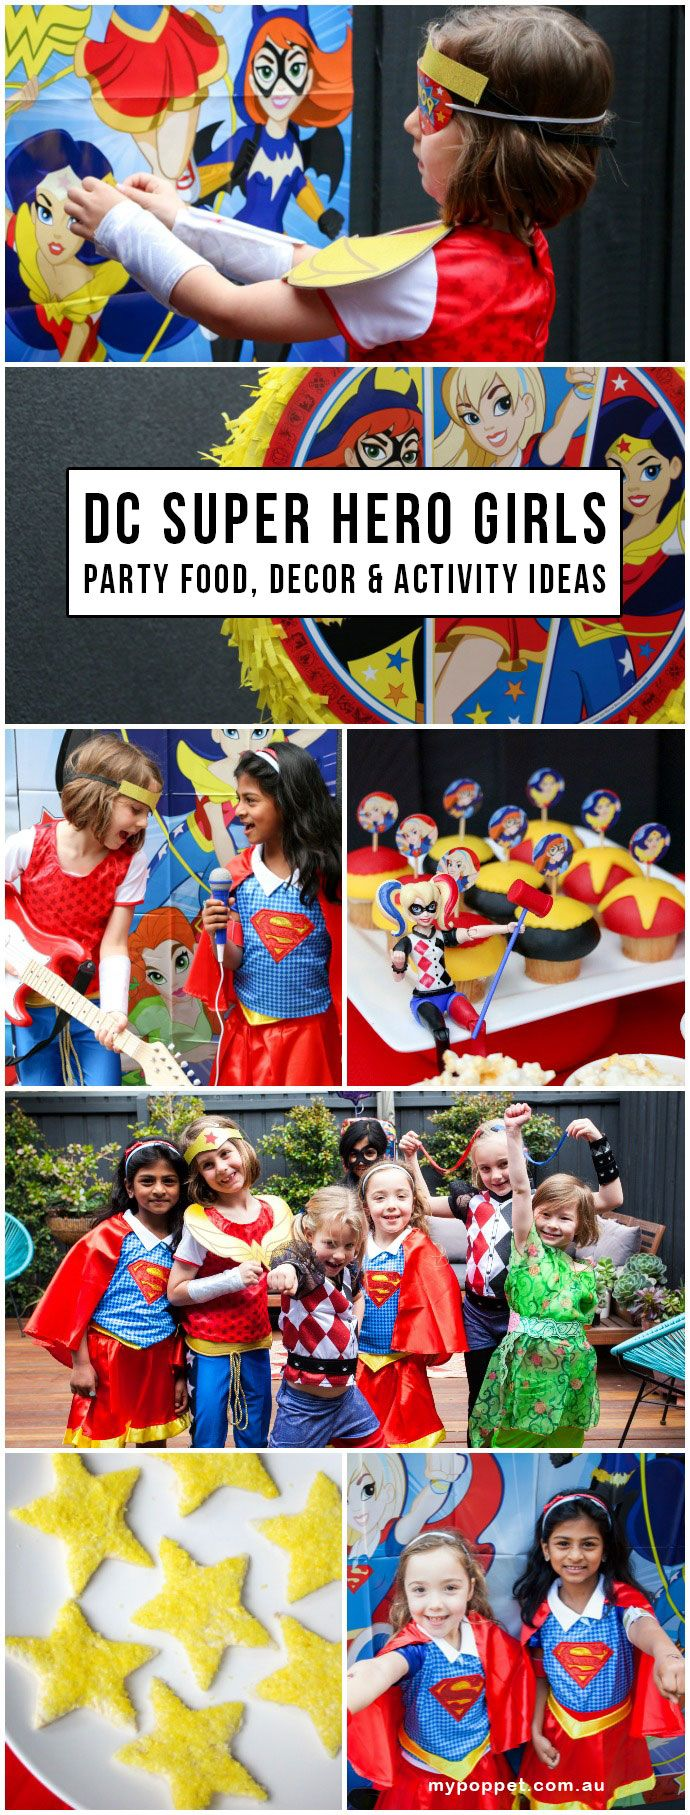 Emma's 'DC Super Hero Girls' Party - Fun Party Food, Decorating & Activity Ideas                                                                                                                                                                                 More